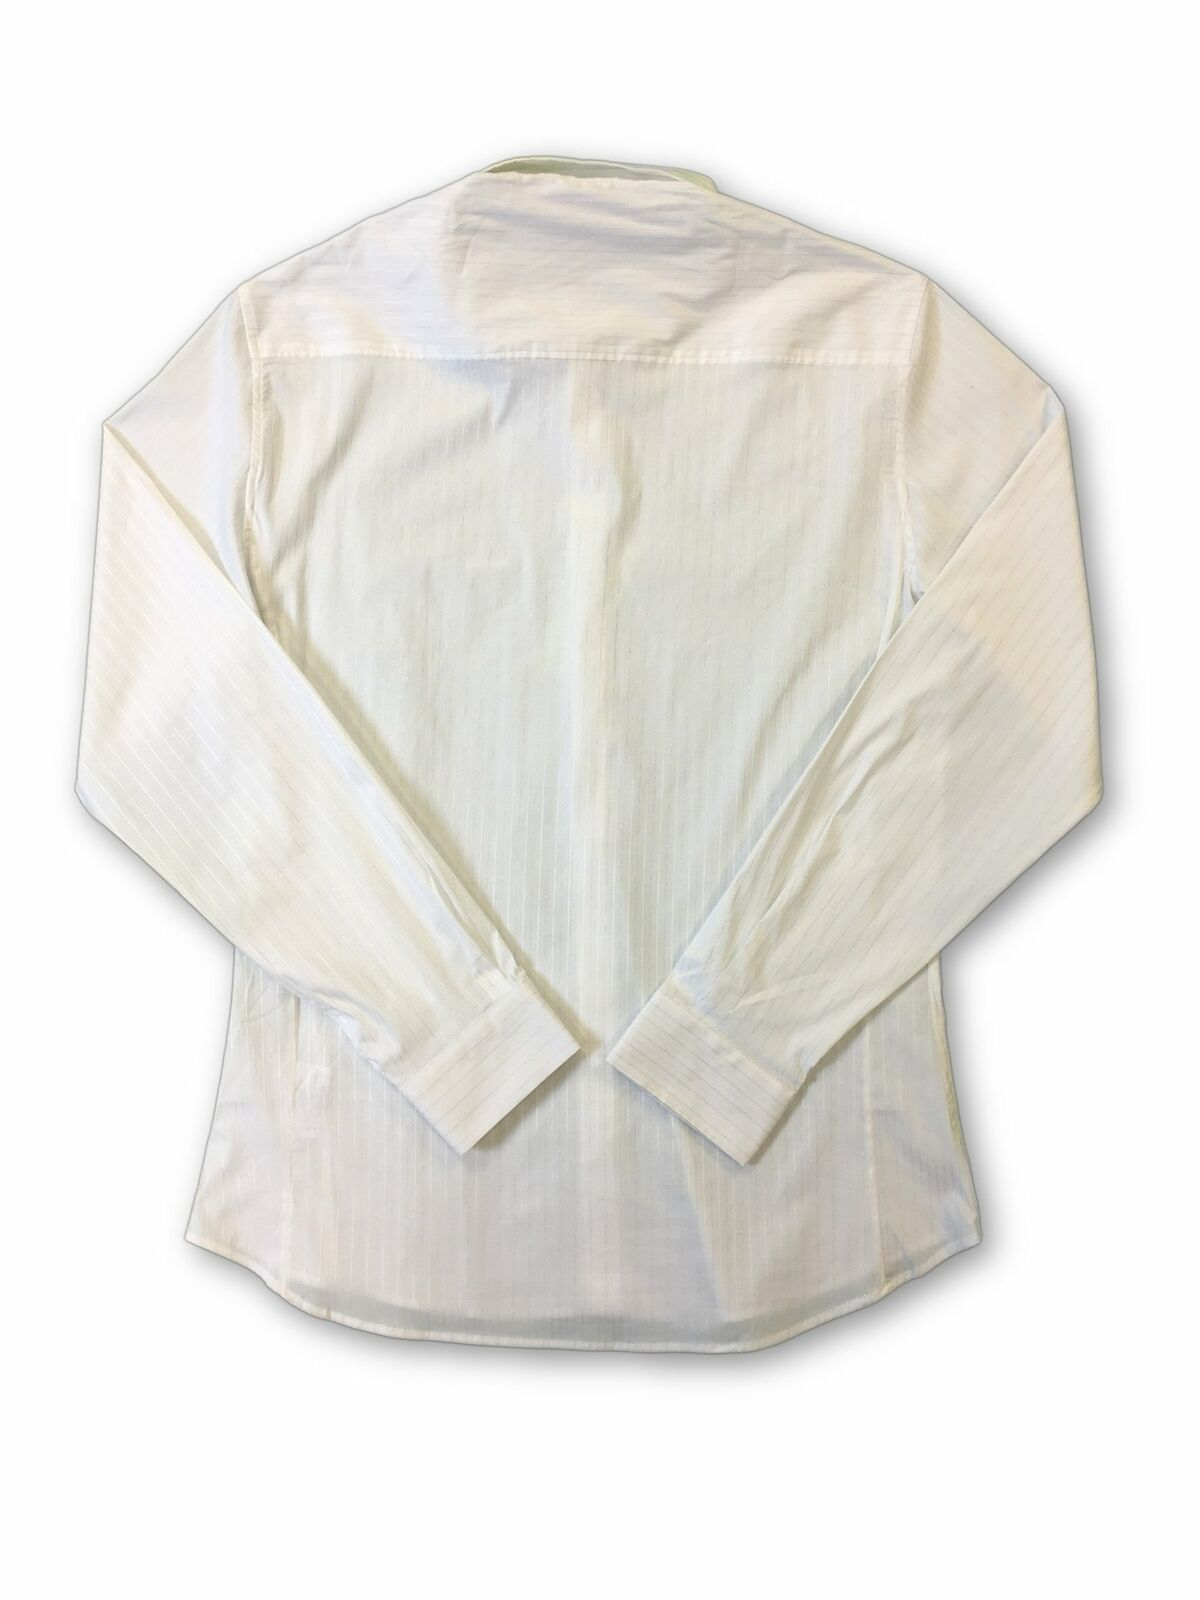 Versace-Jeans-039-Elegant-039-slim-fit-shirt-in-white-and-silver-stripe-rrp-179-99 thumbnail 7